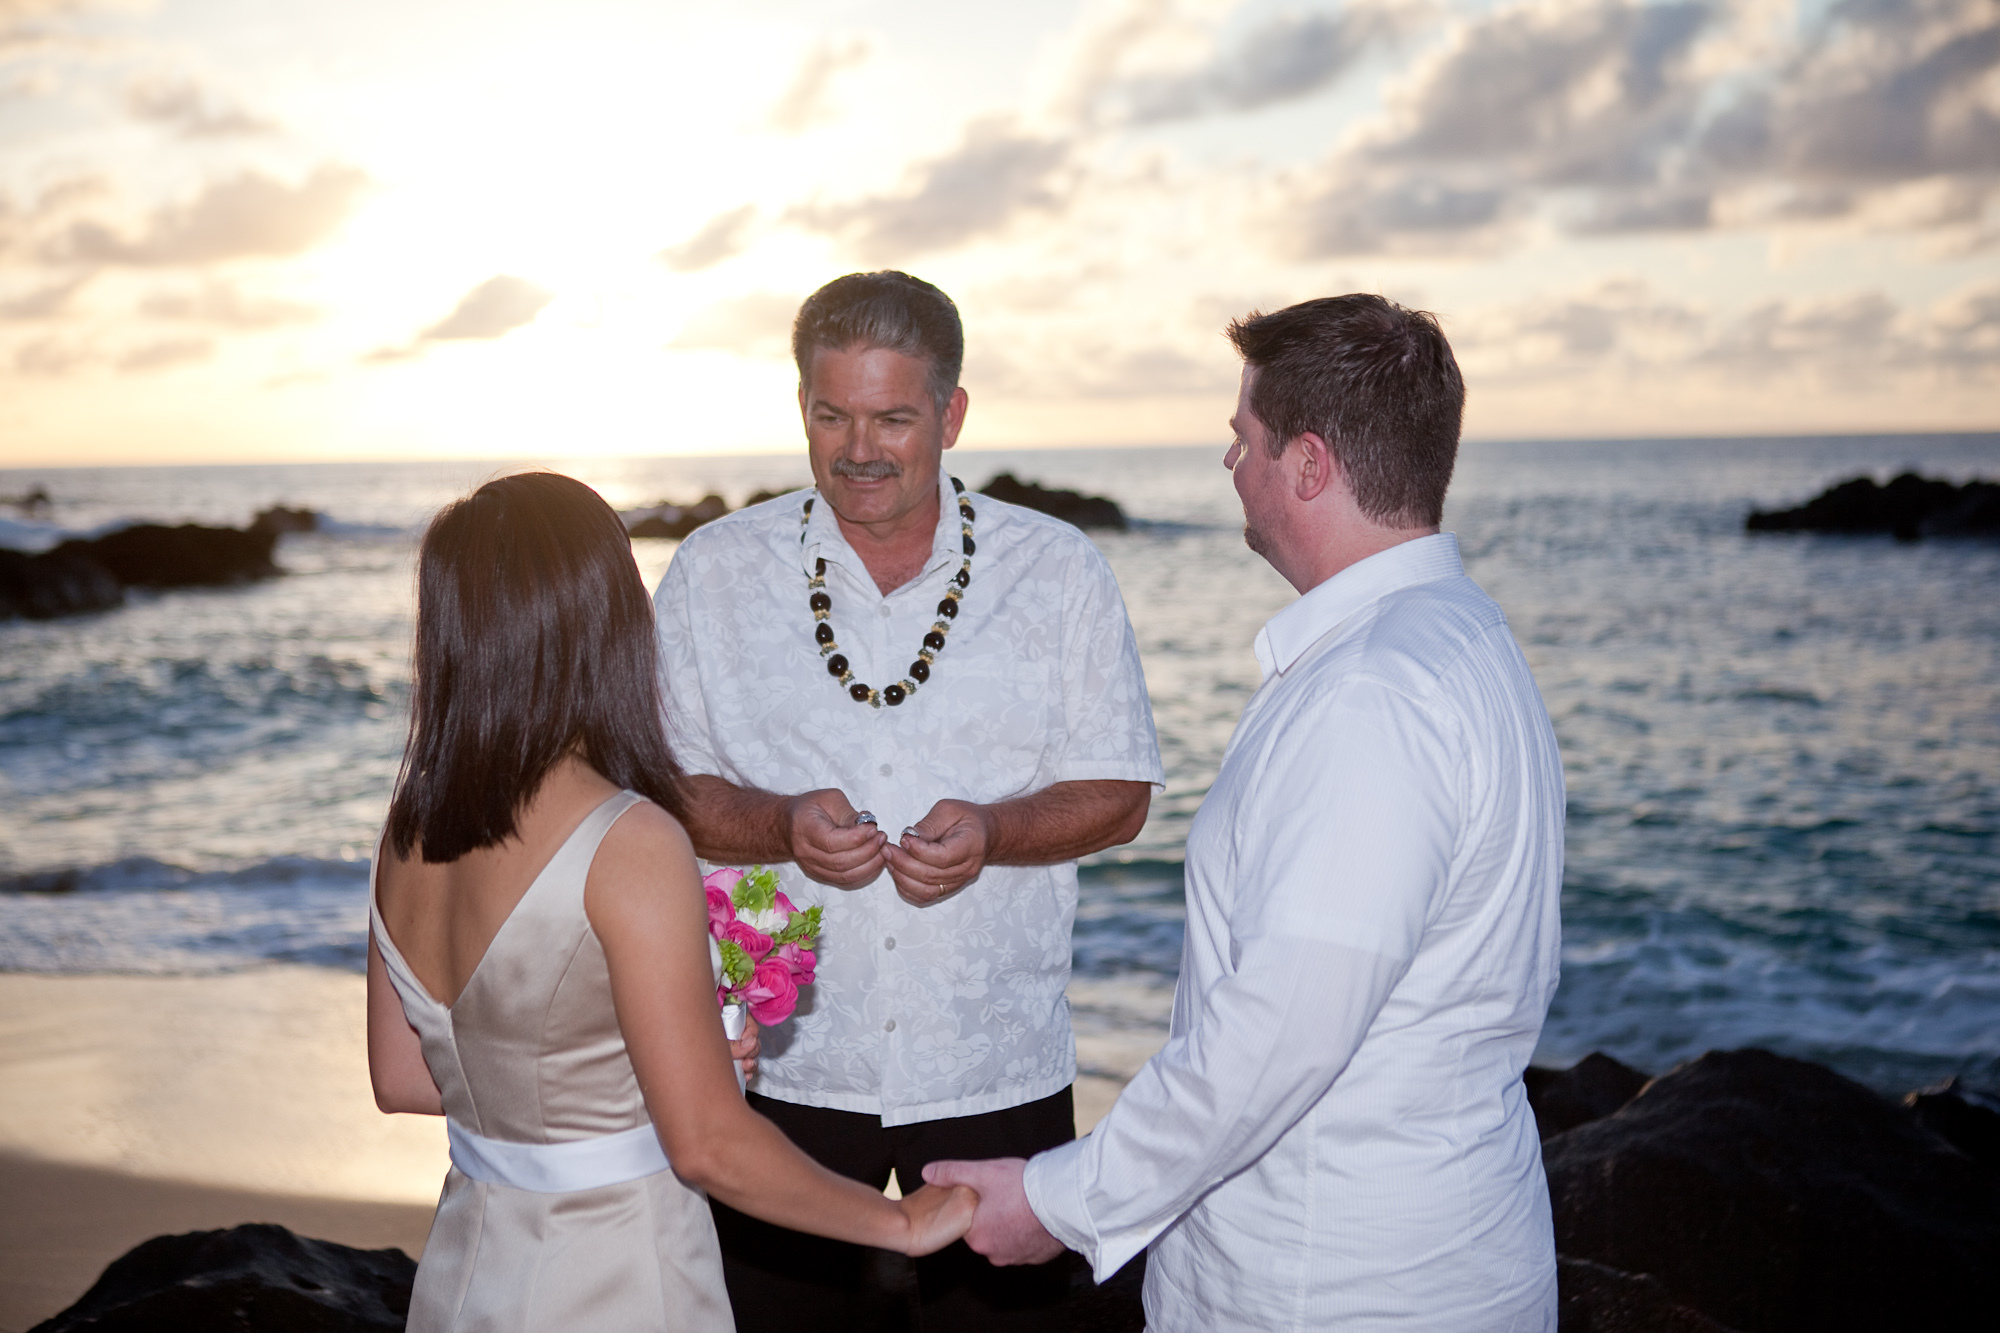 Ceremony, Flowers & Decor, Officiant, Minister, The marrying man hawaii